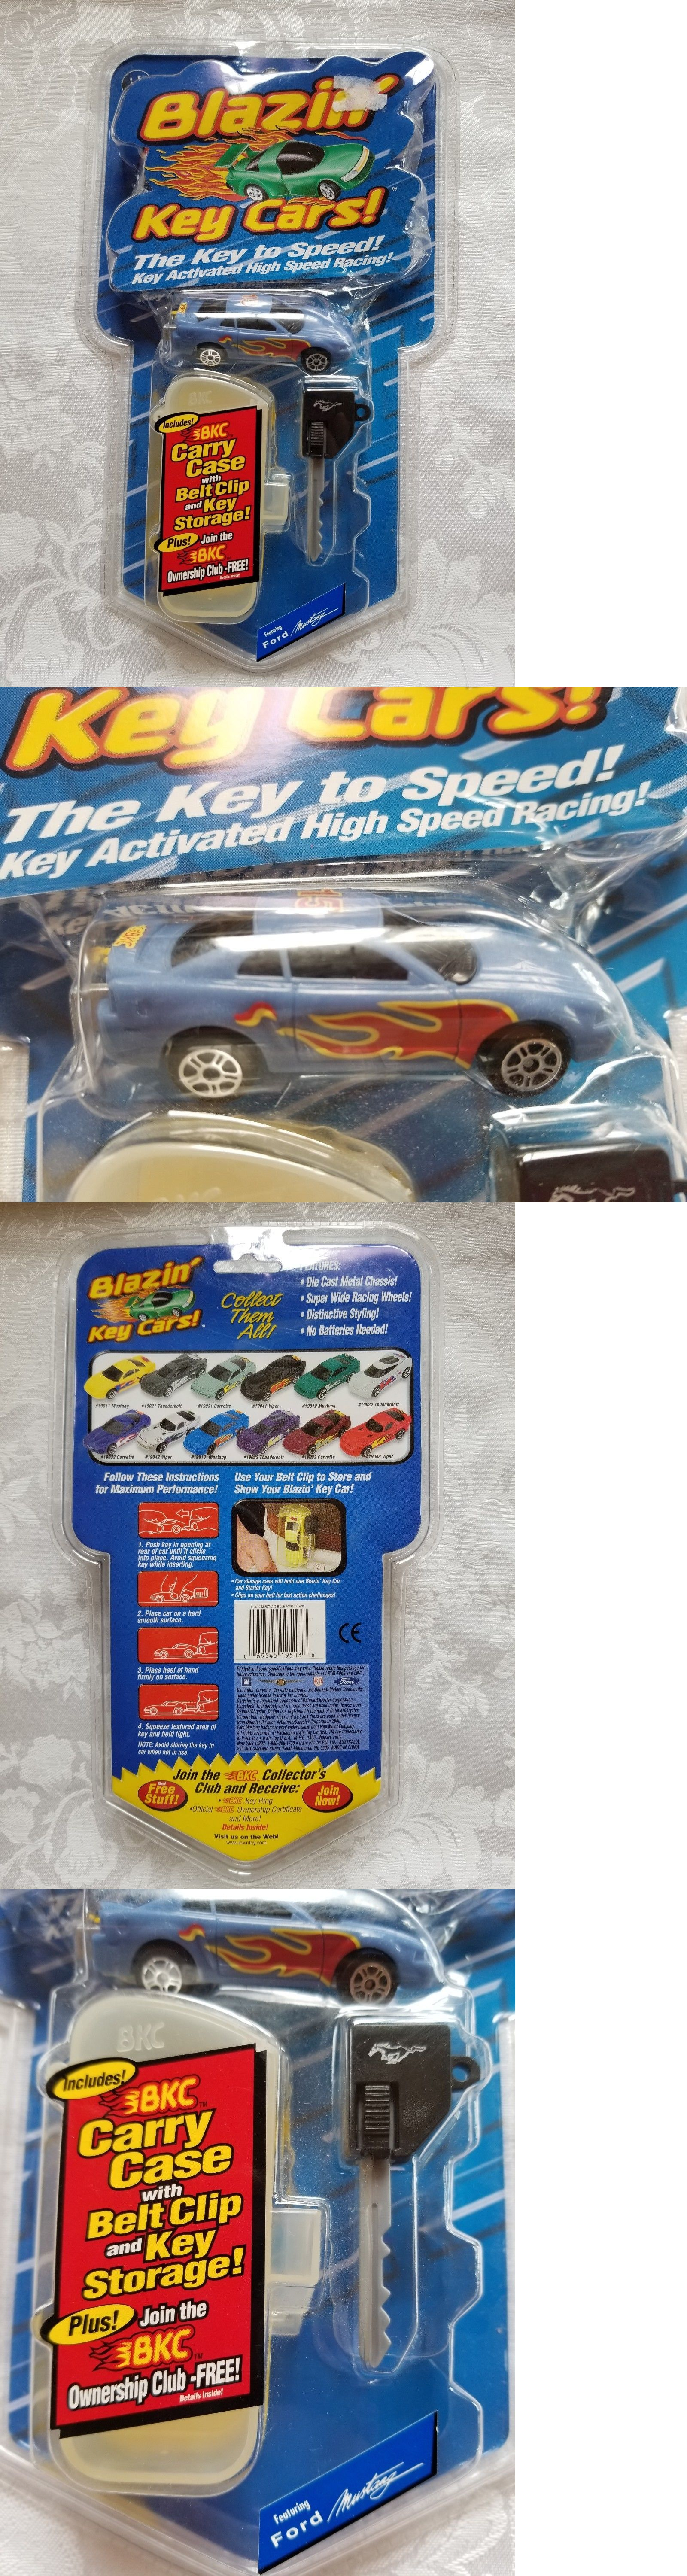 Toys car keys  Blazinu Key Cars Irwin Toys Blue Ford Mustang with Carry Case